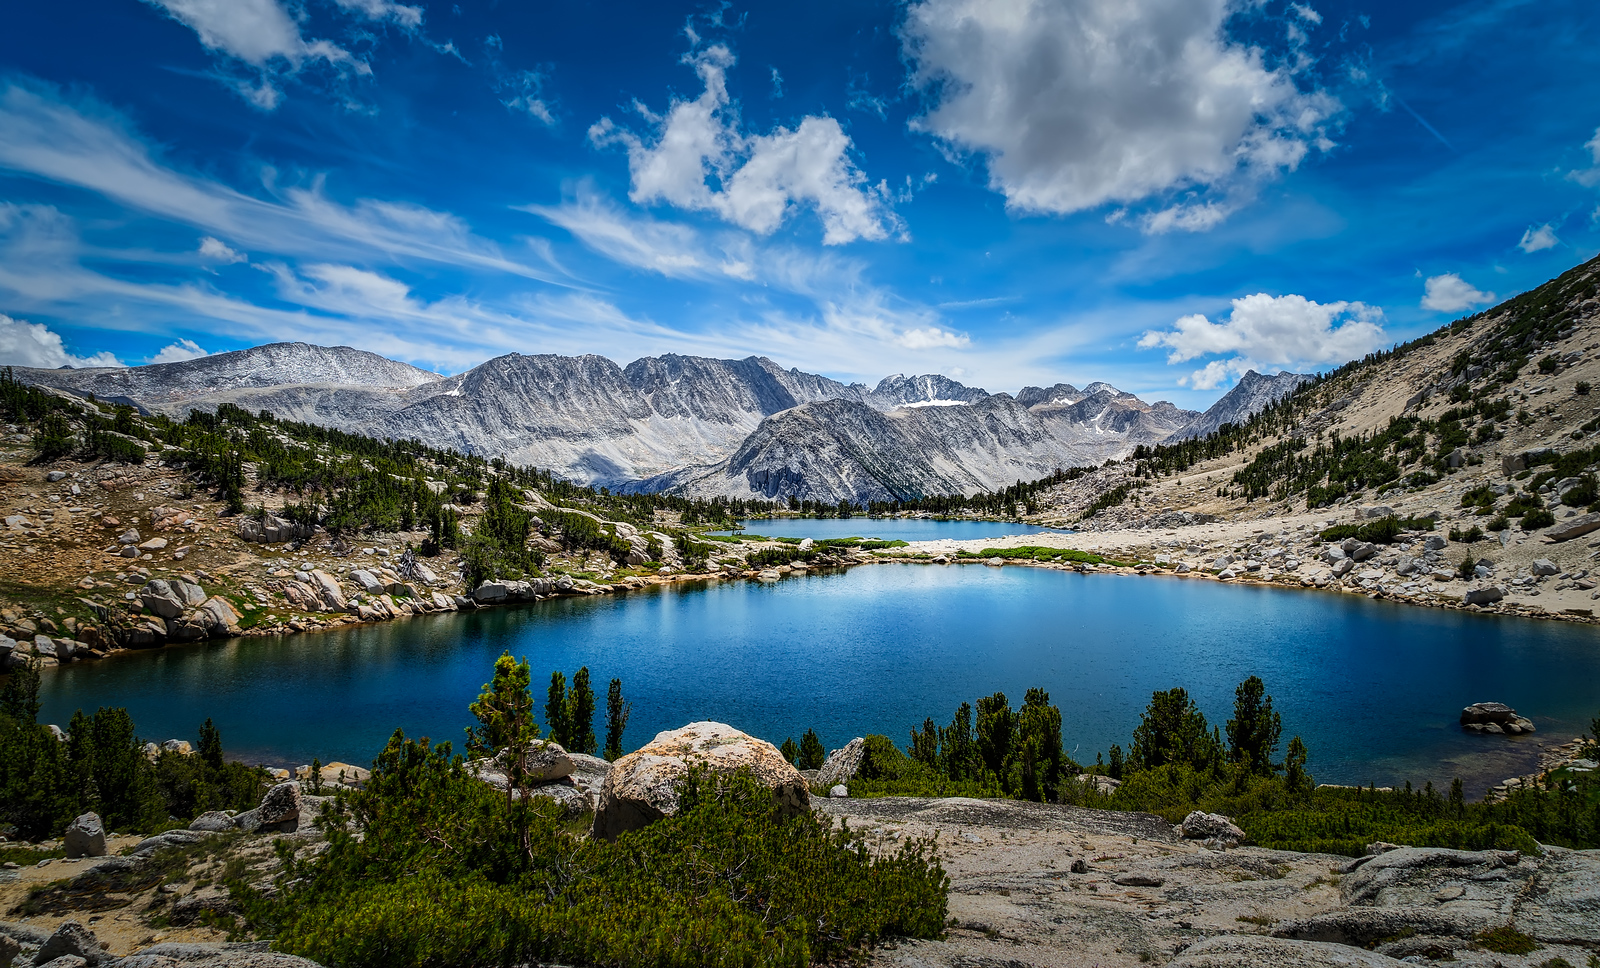 Lakes 1 and 2 in Pioneer Basin